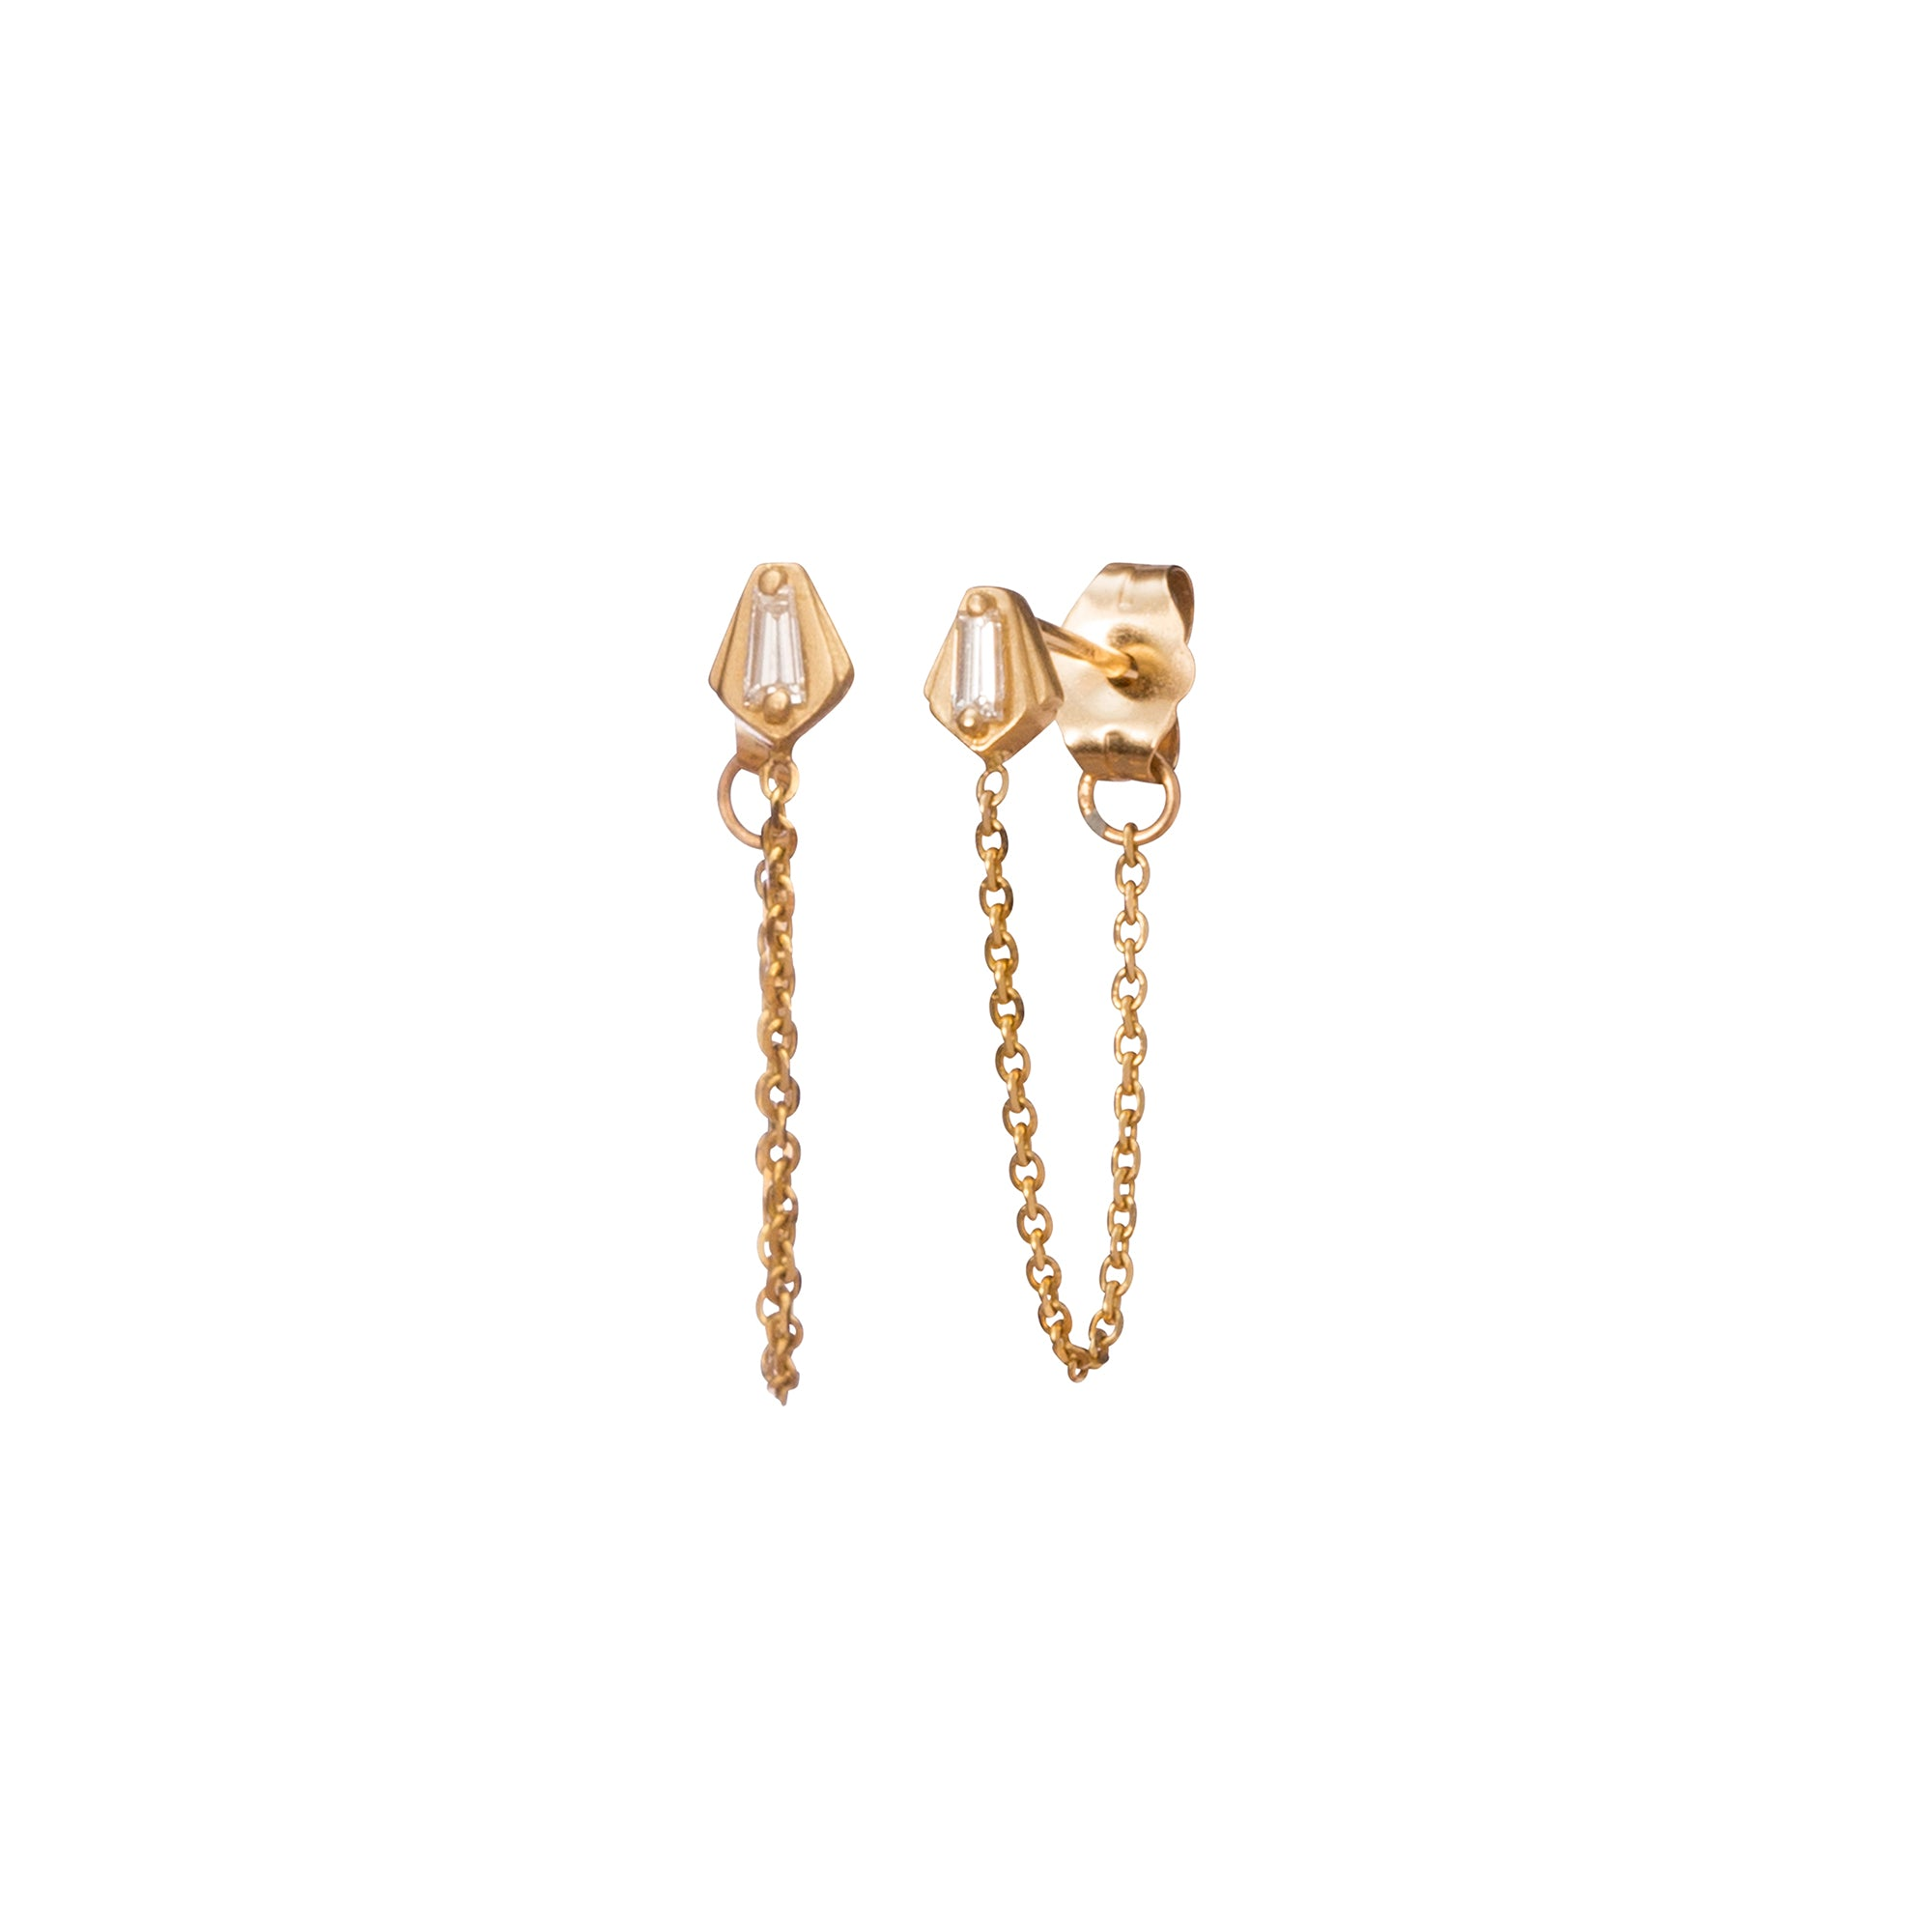 Gold & White Diamond Nomad Lantern Chain Earrings by Michelle Fantaci for Broken English Jewelry